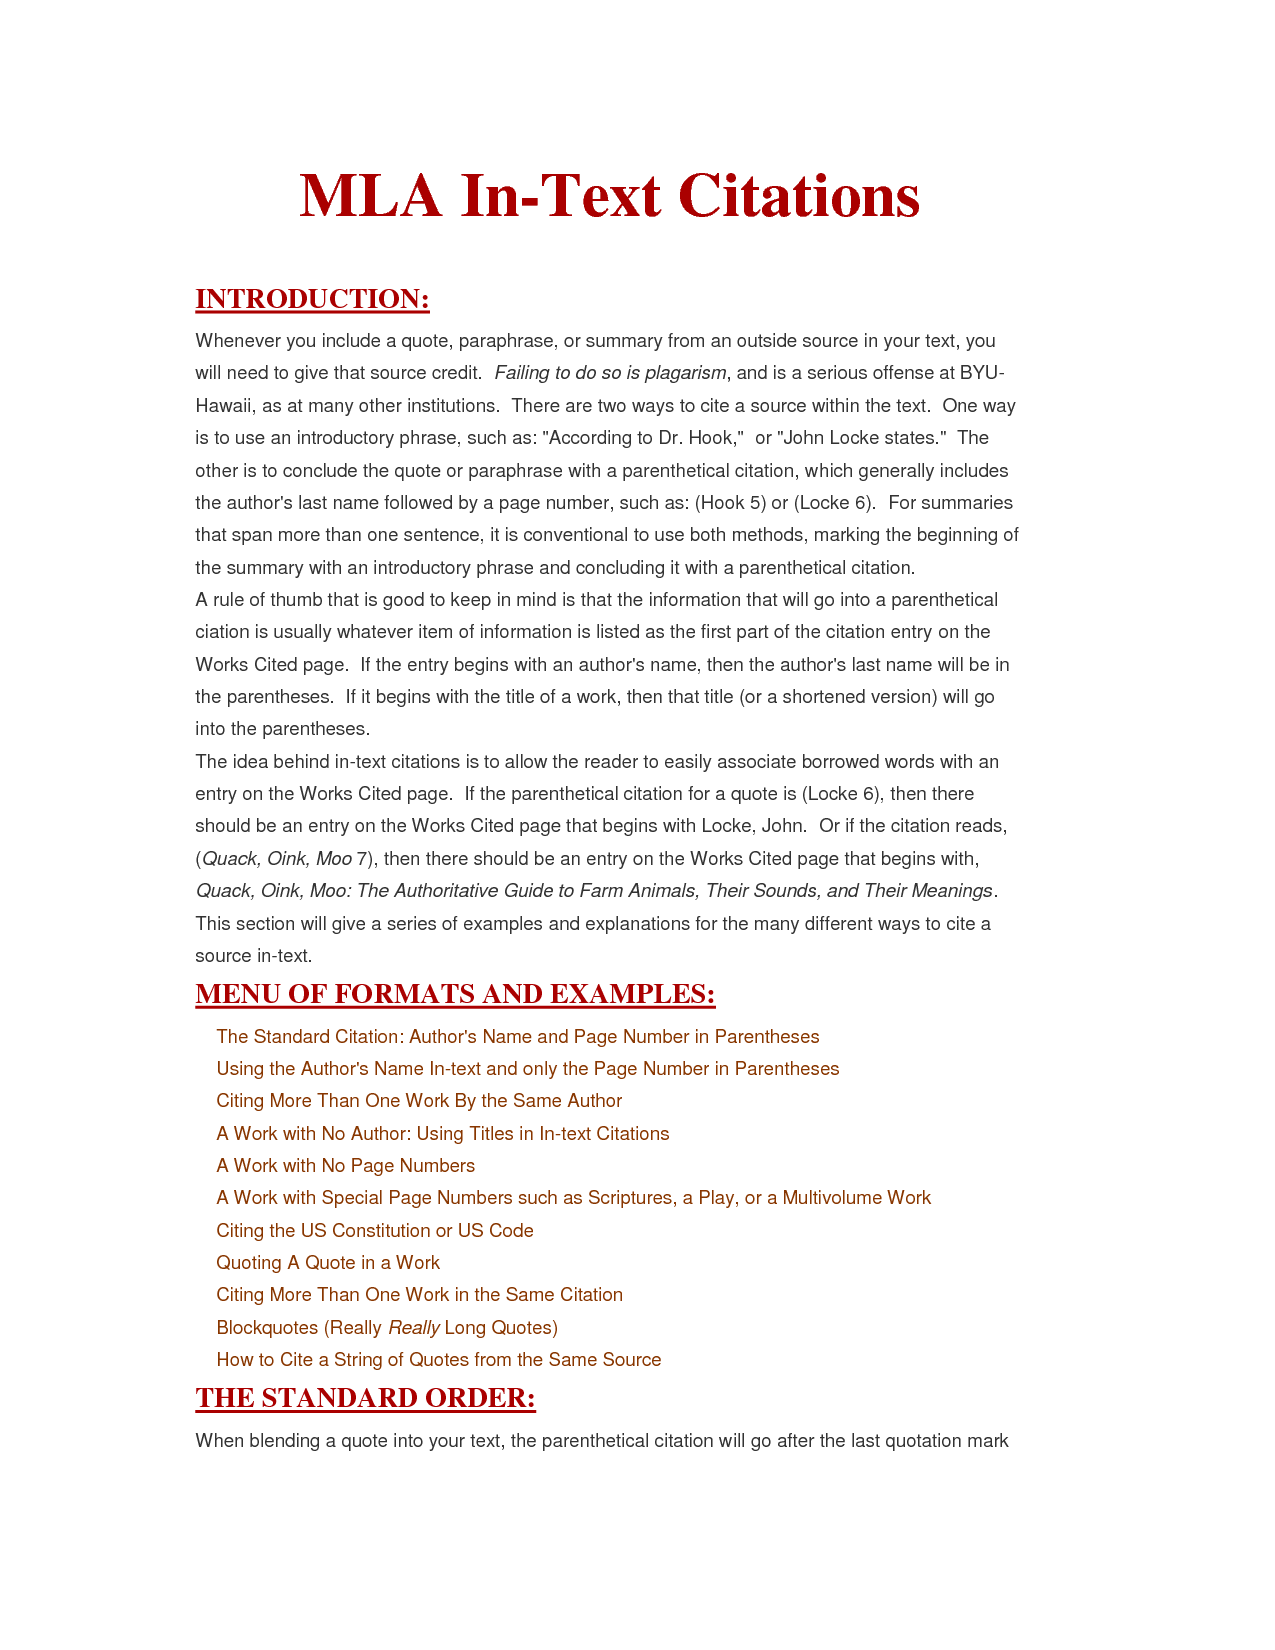 quote an essay mla Mla citation format adapted from the mla handbook, 7 th edition mla citation format is a method for formatting your paper and documenting the sources of information you use in your paper the proper use of a citation format such as mla can help you avoid plagiarism parenthetical citations within the text of your paper.